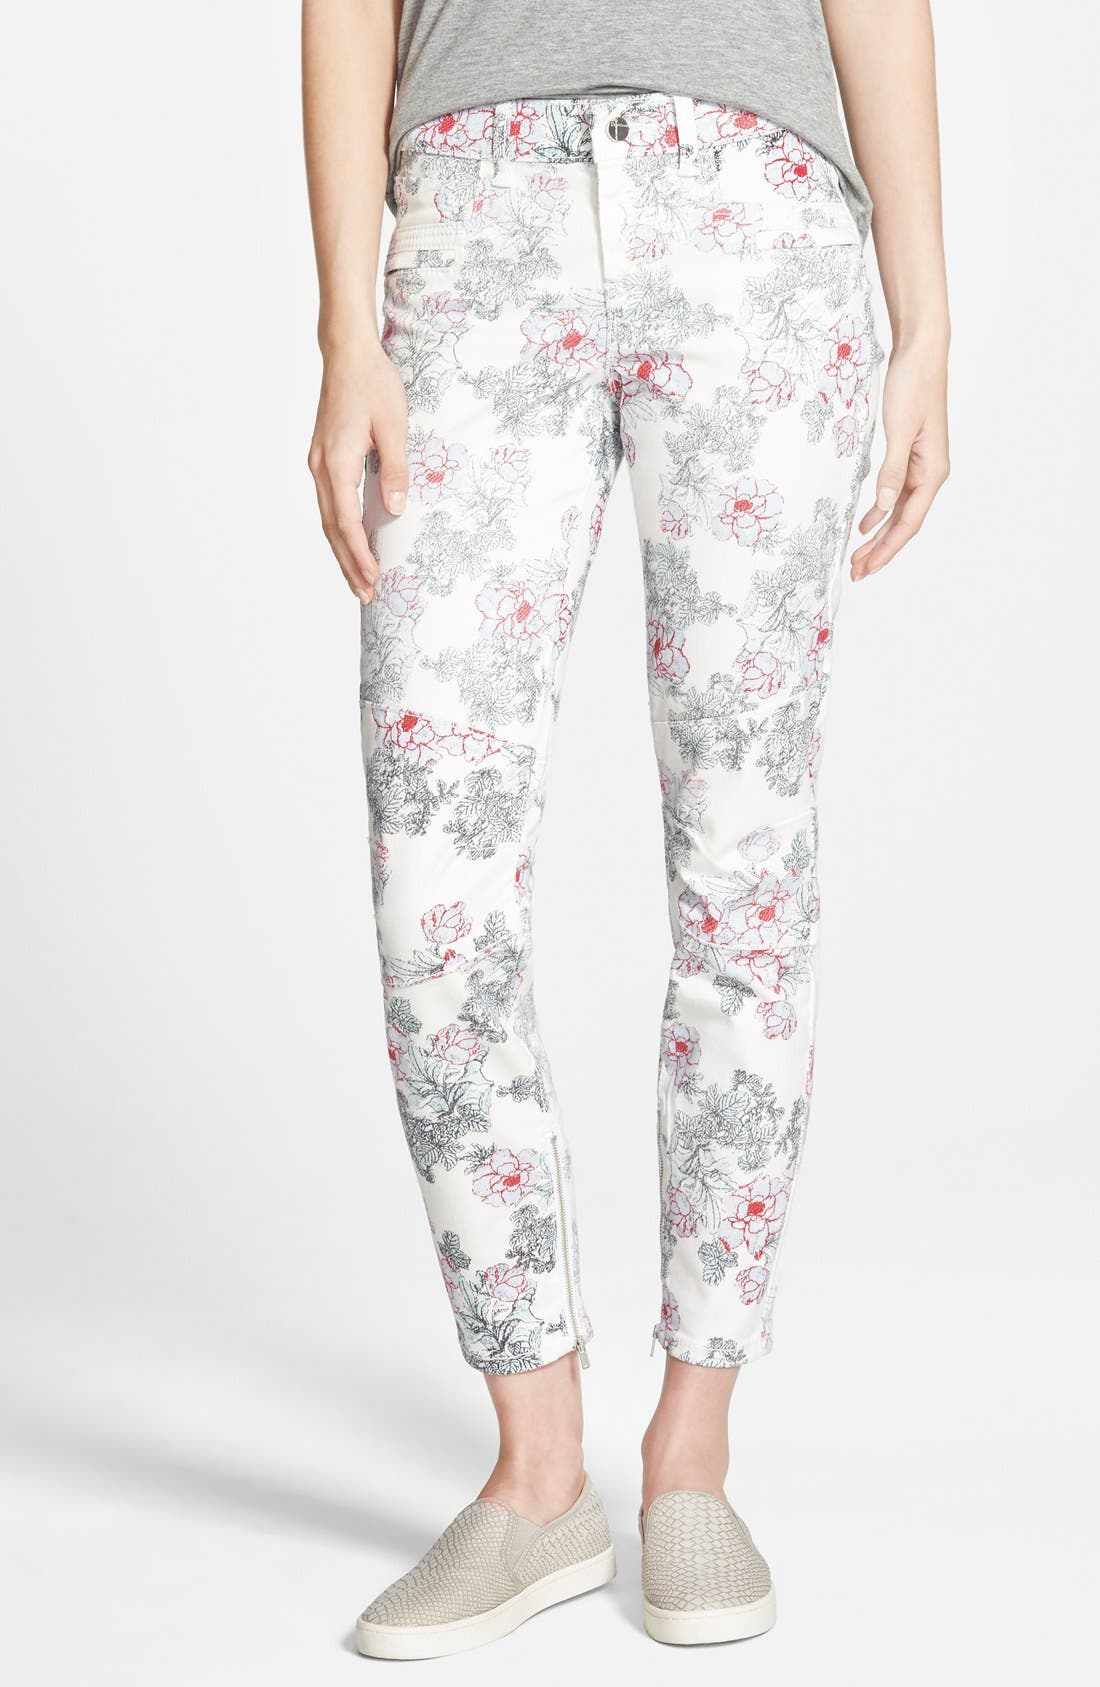 Alternate Image 1 Selected - Standards & Practices Floral Print Skinny Jeans (White)